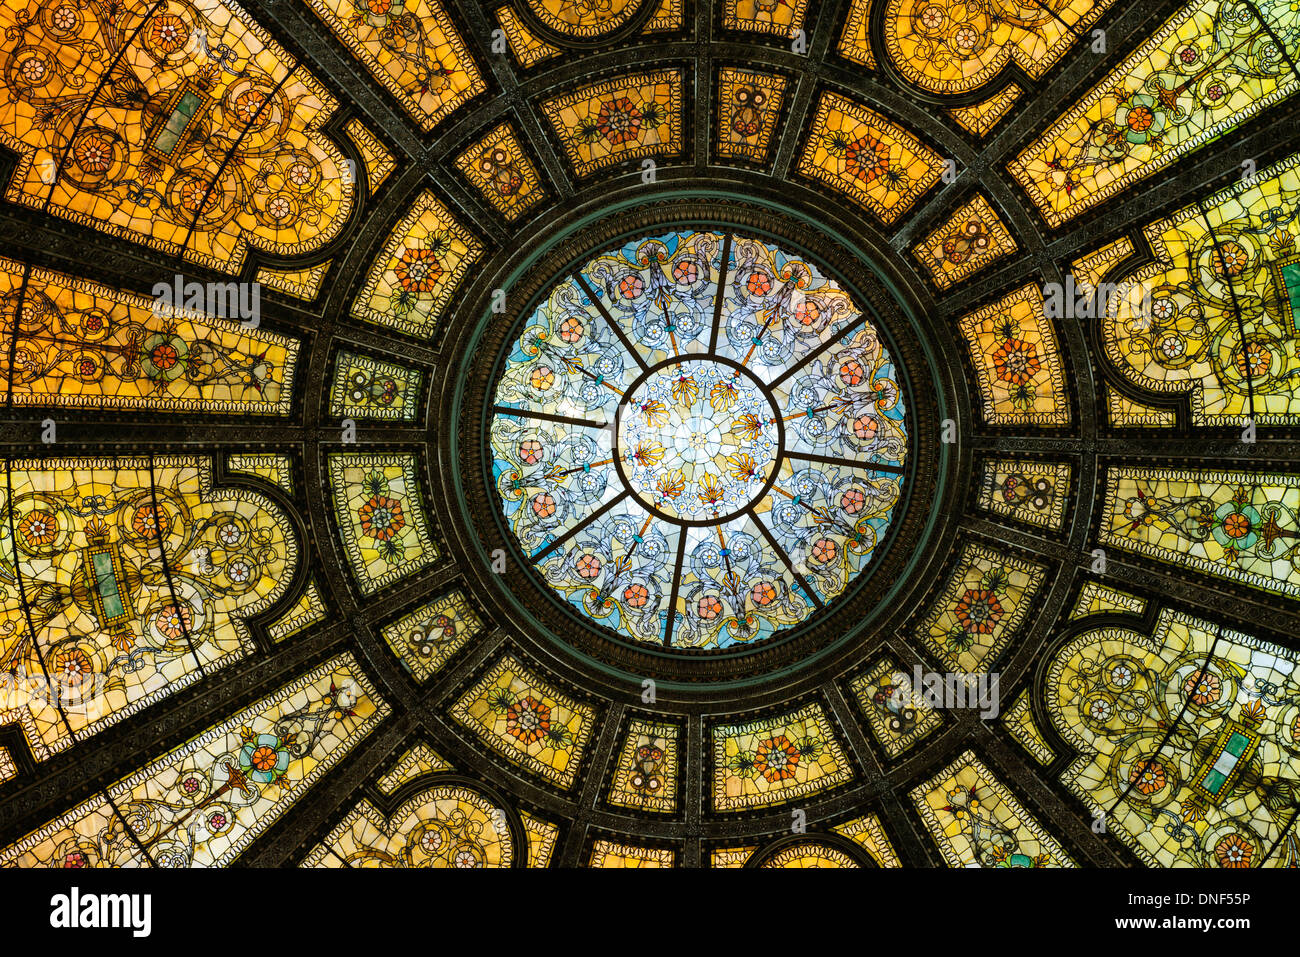 Healy and Millet stained glass dome in the Chicago Cultural Center. - Stock Image